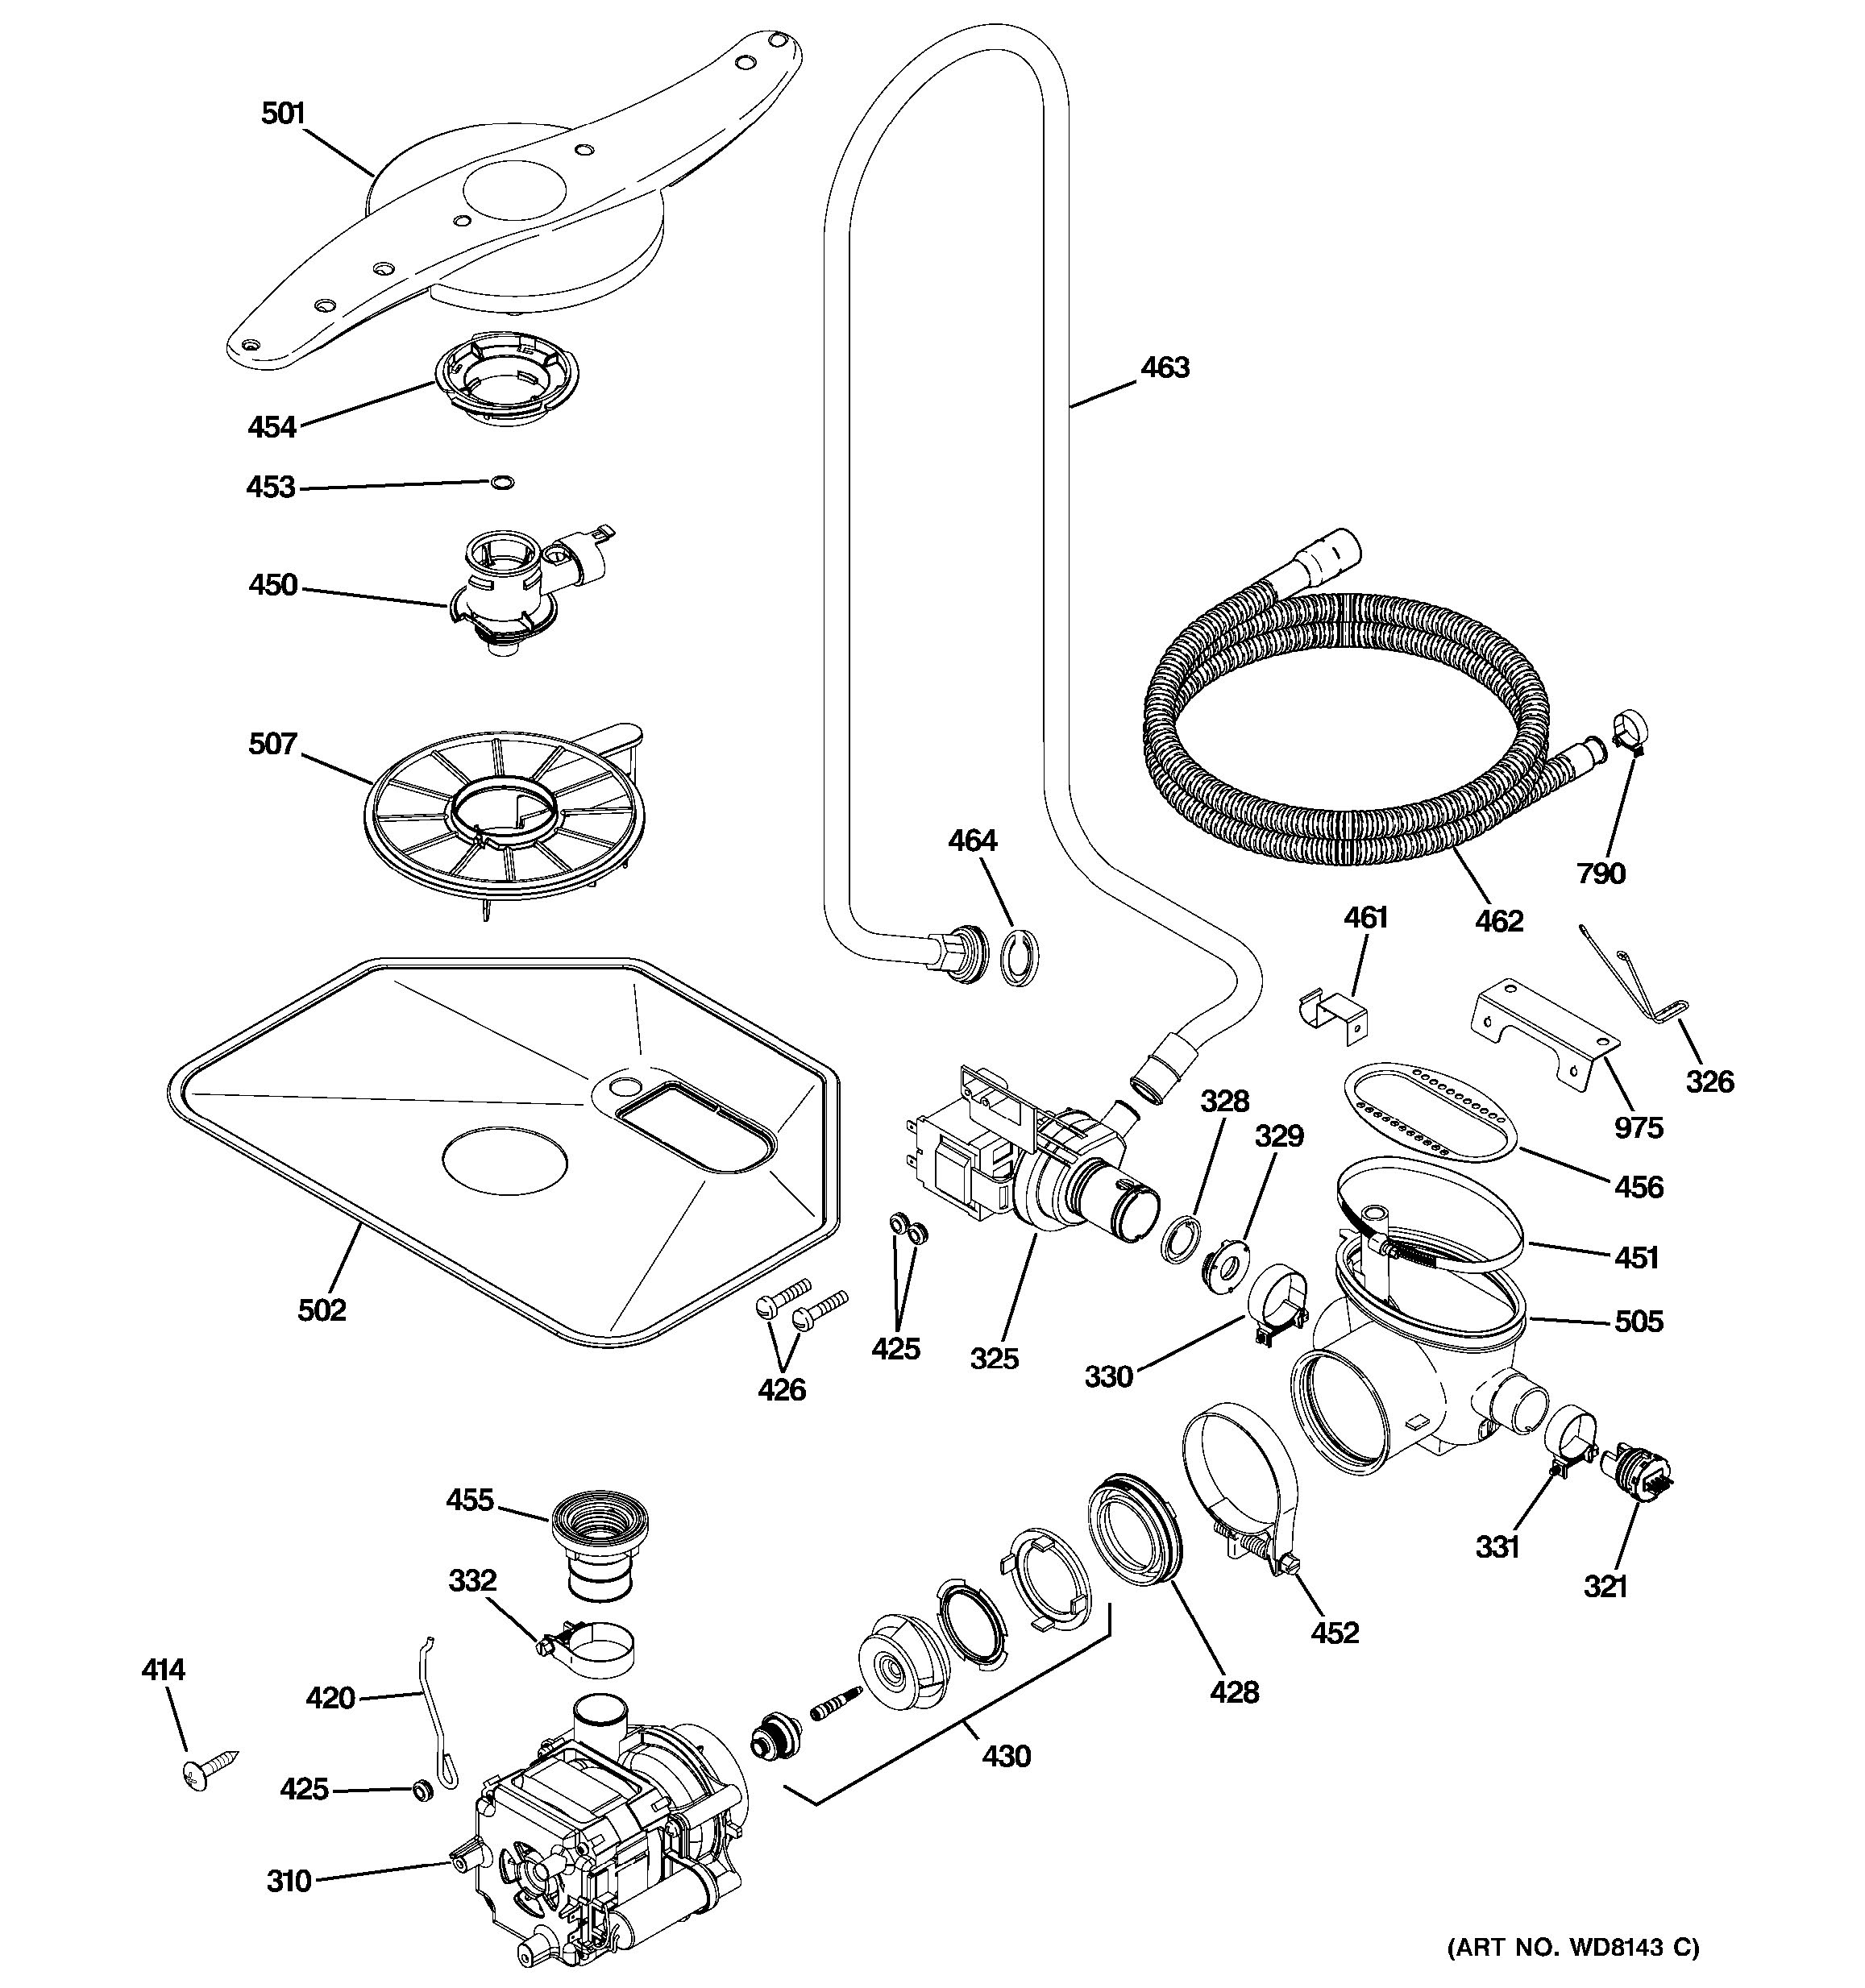 assembly view for motor